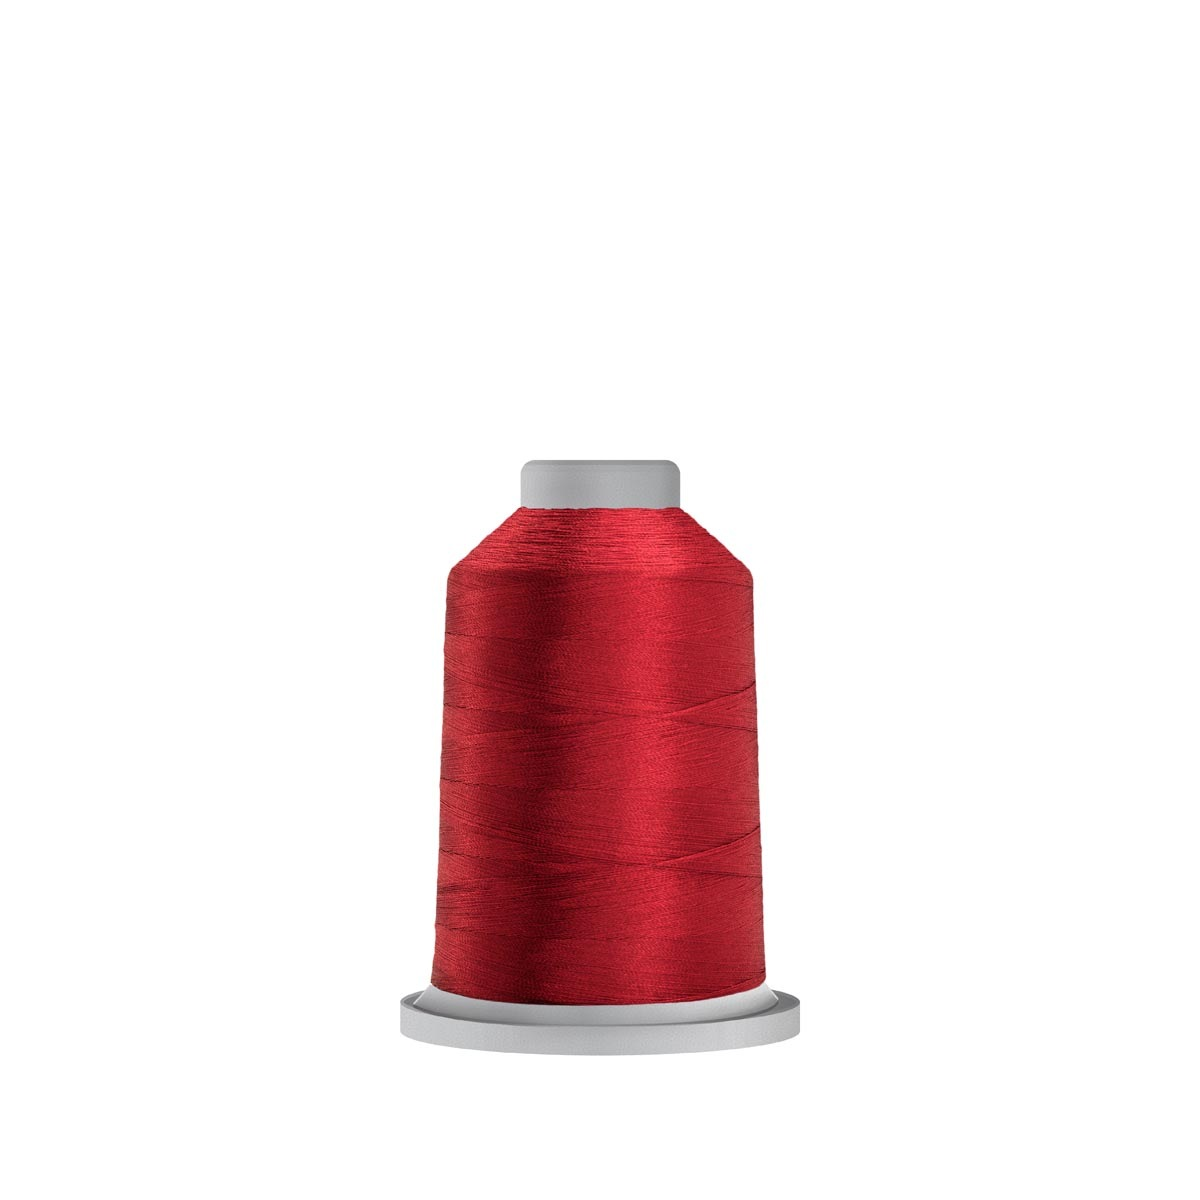 Glide Trilobal Polyester No. 40 Thread - Candy Apple Red